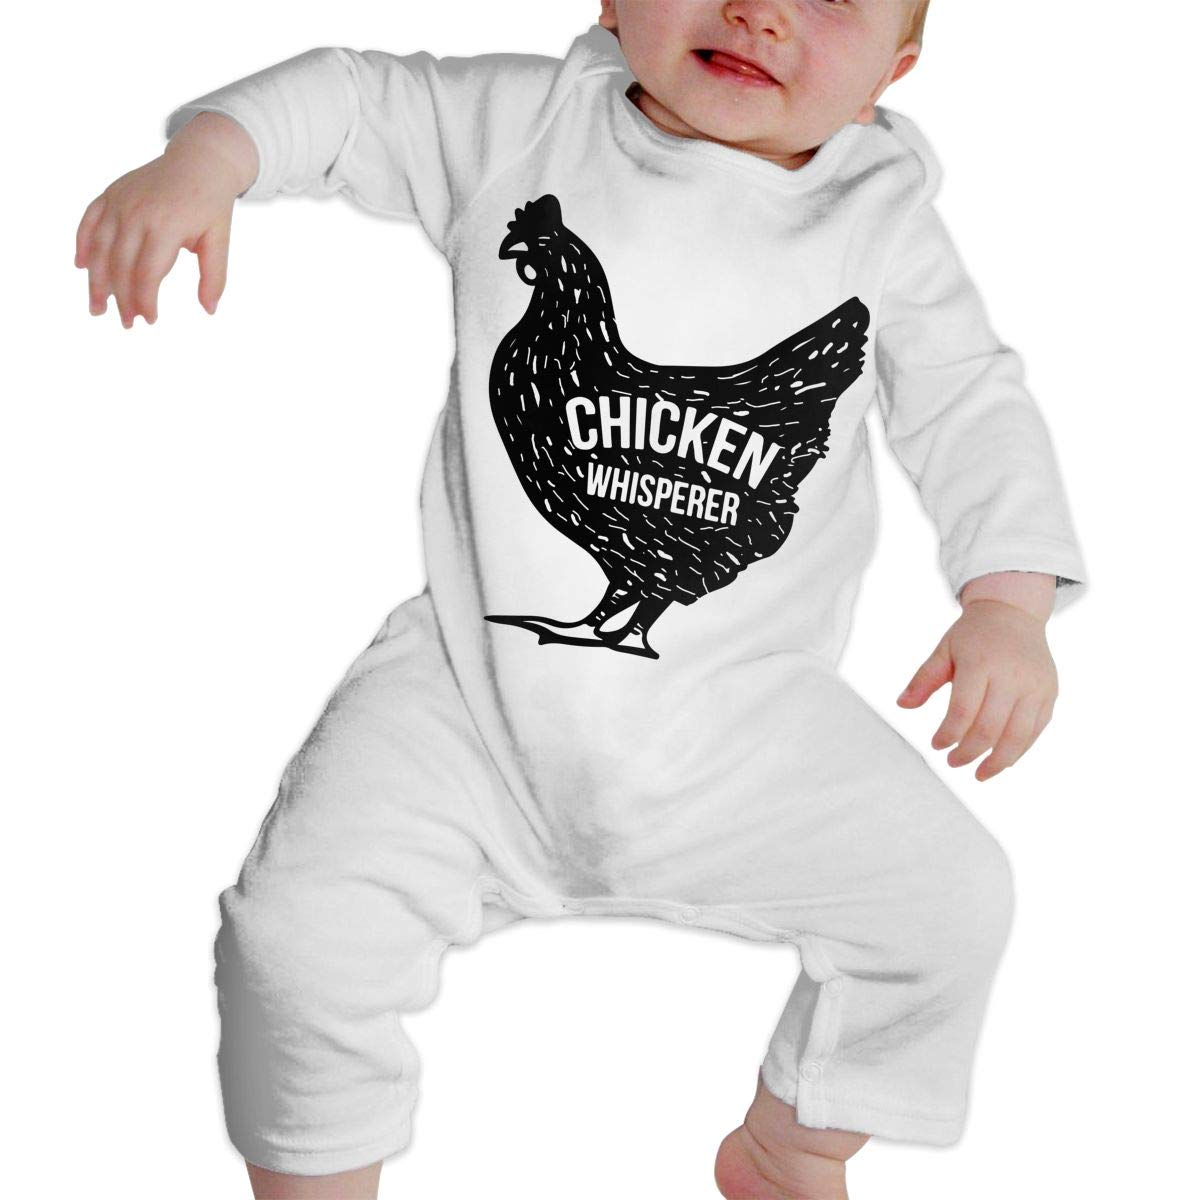 Db84UR@5p Newborn Baby Girls Boys Long Sleeve Jumpsuit Bodysuits & One-Piece Suits Warm Chicken Whisperer Cotton Crawling Suit Jumpsuit